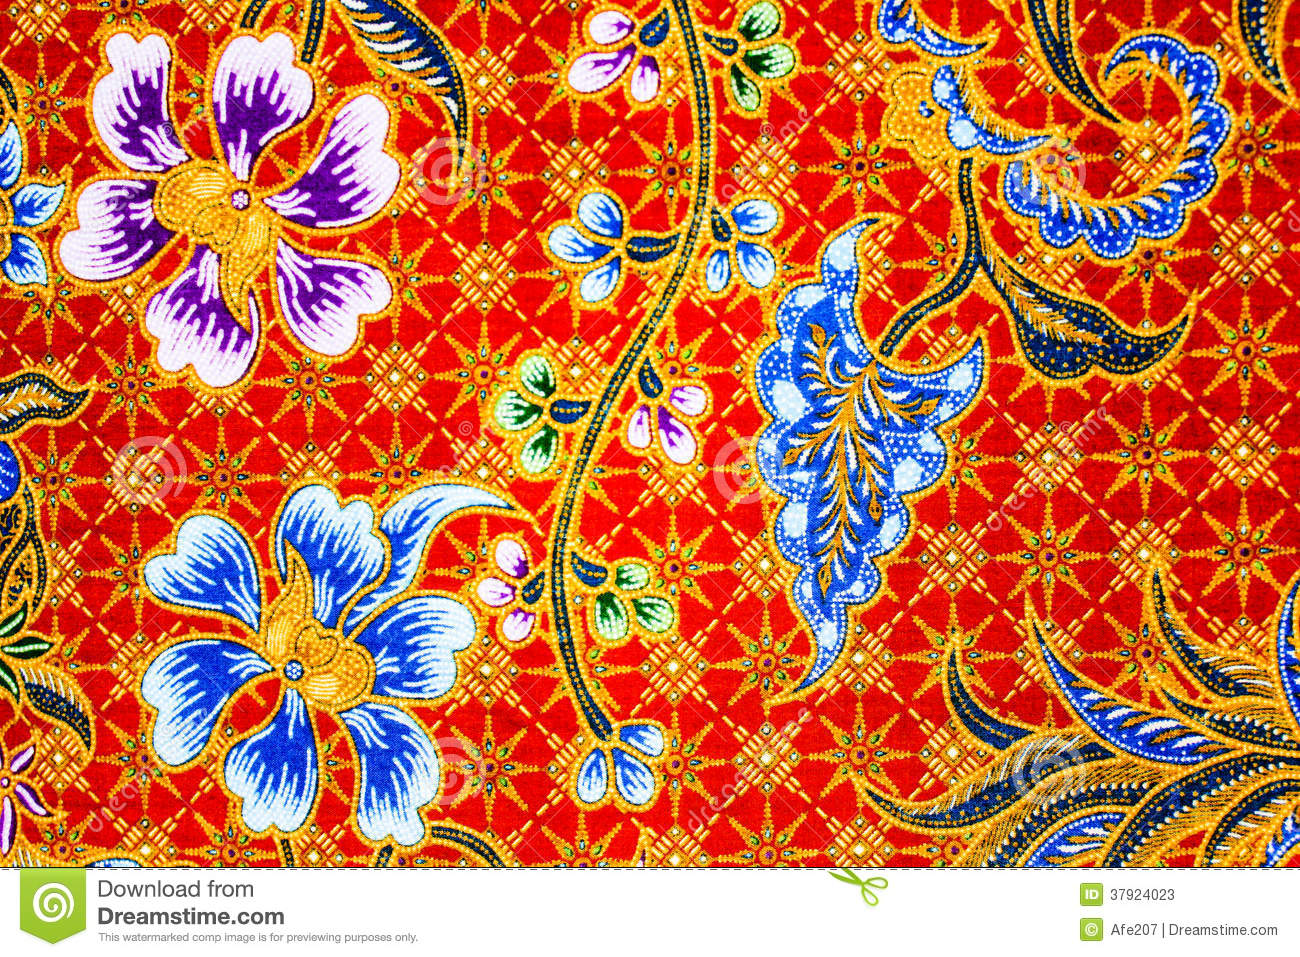 Background batik pattern stock photography image 803022 - Batik Sarong Pattern Background In Thailand Traditional Batik Stock Photos